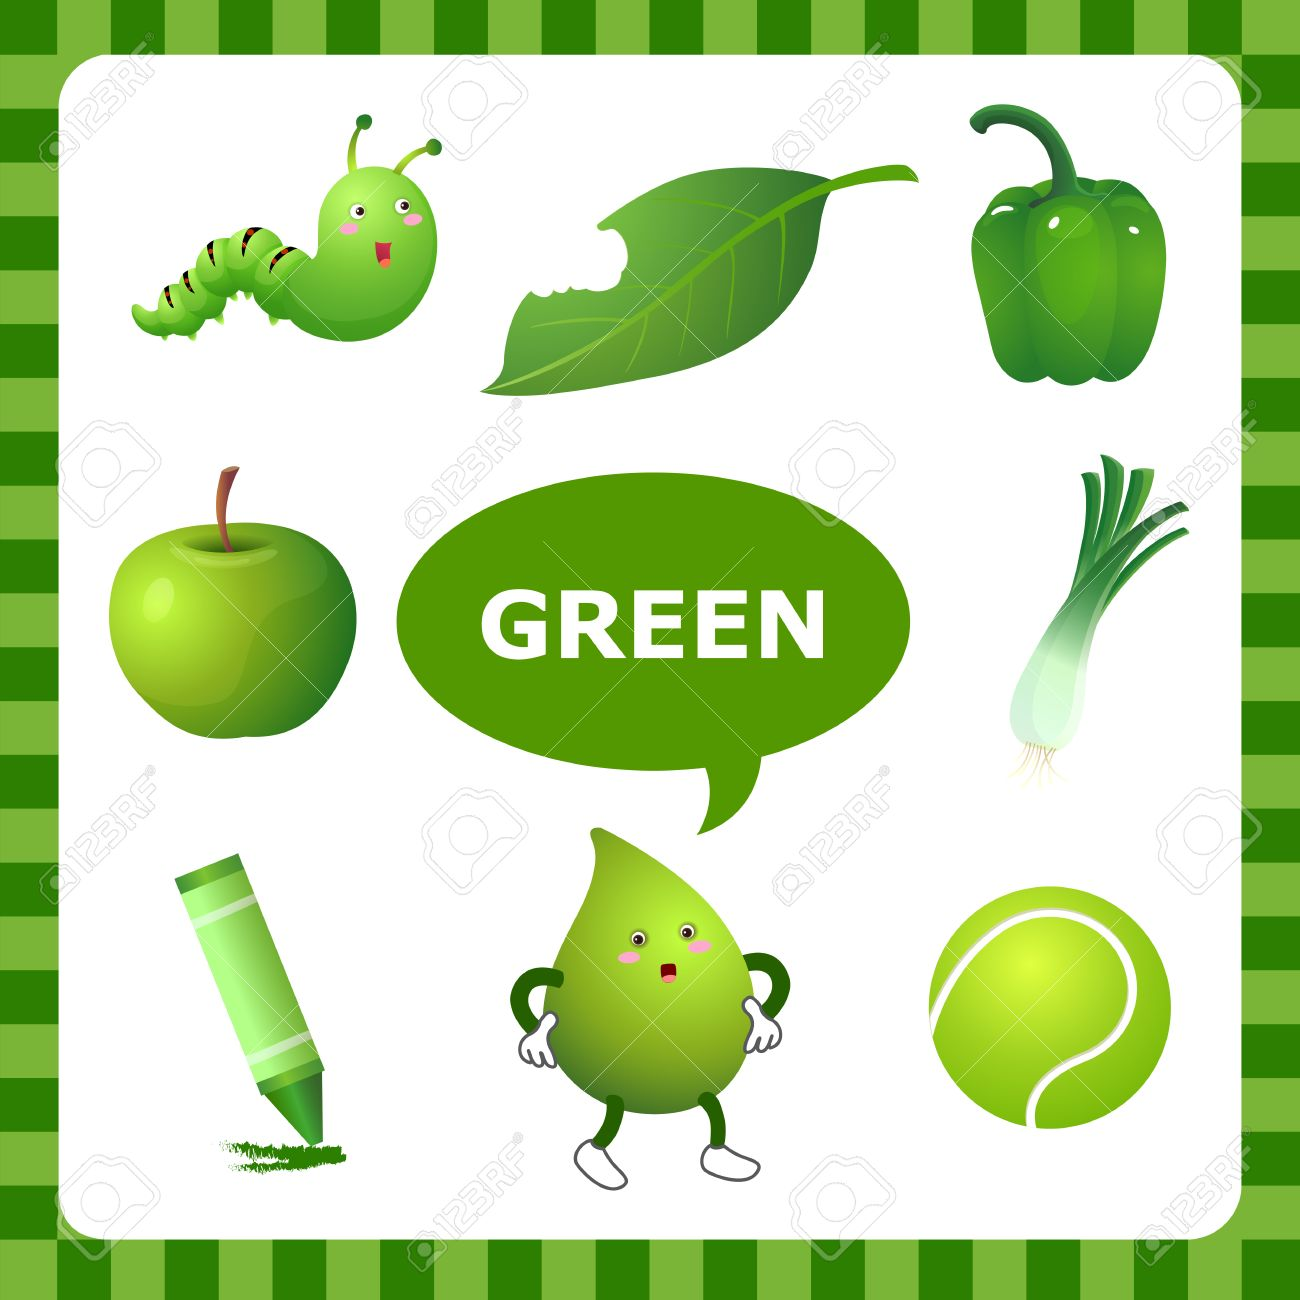 Learn The Color Green Things That Are Green Color Royalty Free ...